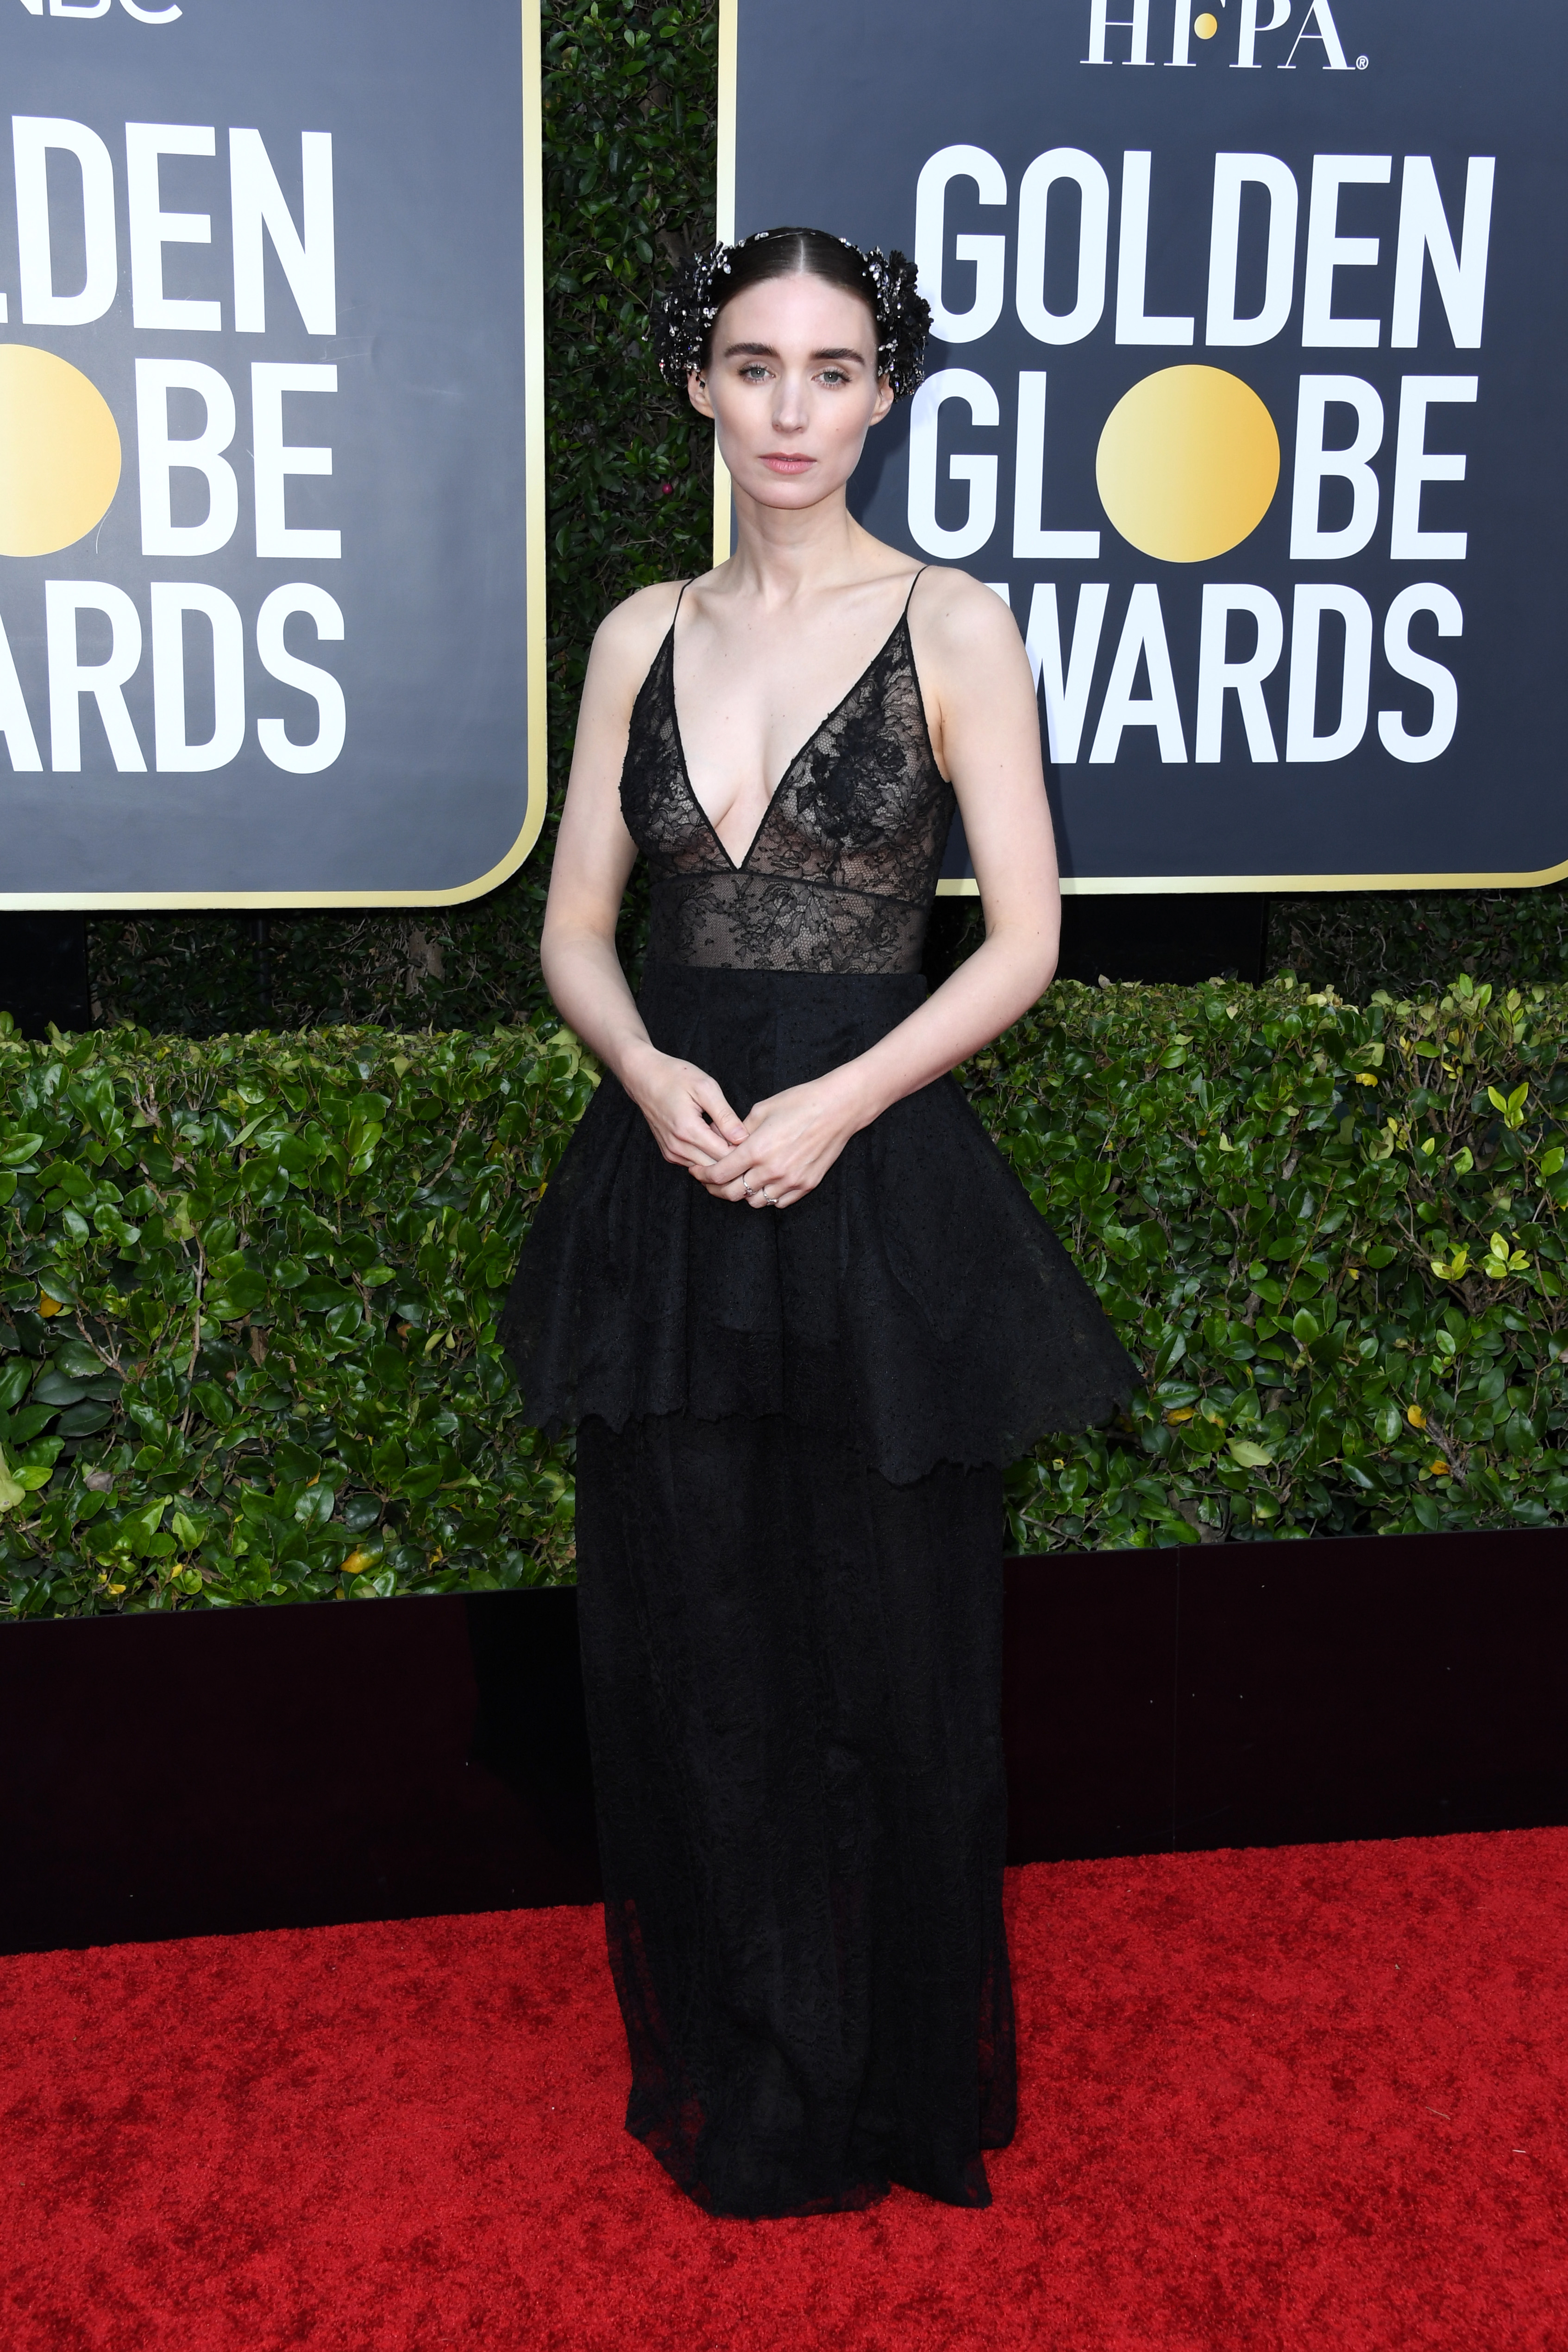 BEVERLY HILLS, CALIFORNIA - JANUARY 05: Rooney Mara attends the 77th Annual Golden Globe Awards at The Beverly Hilton Hotel on January 05, 2020 in Beverly Hills, California. (Photo by Jon Kopaloff/Getty Images)